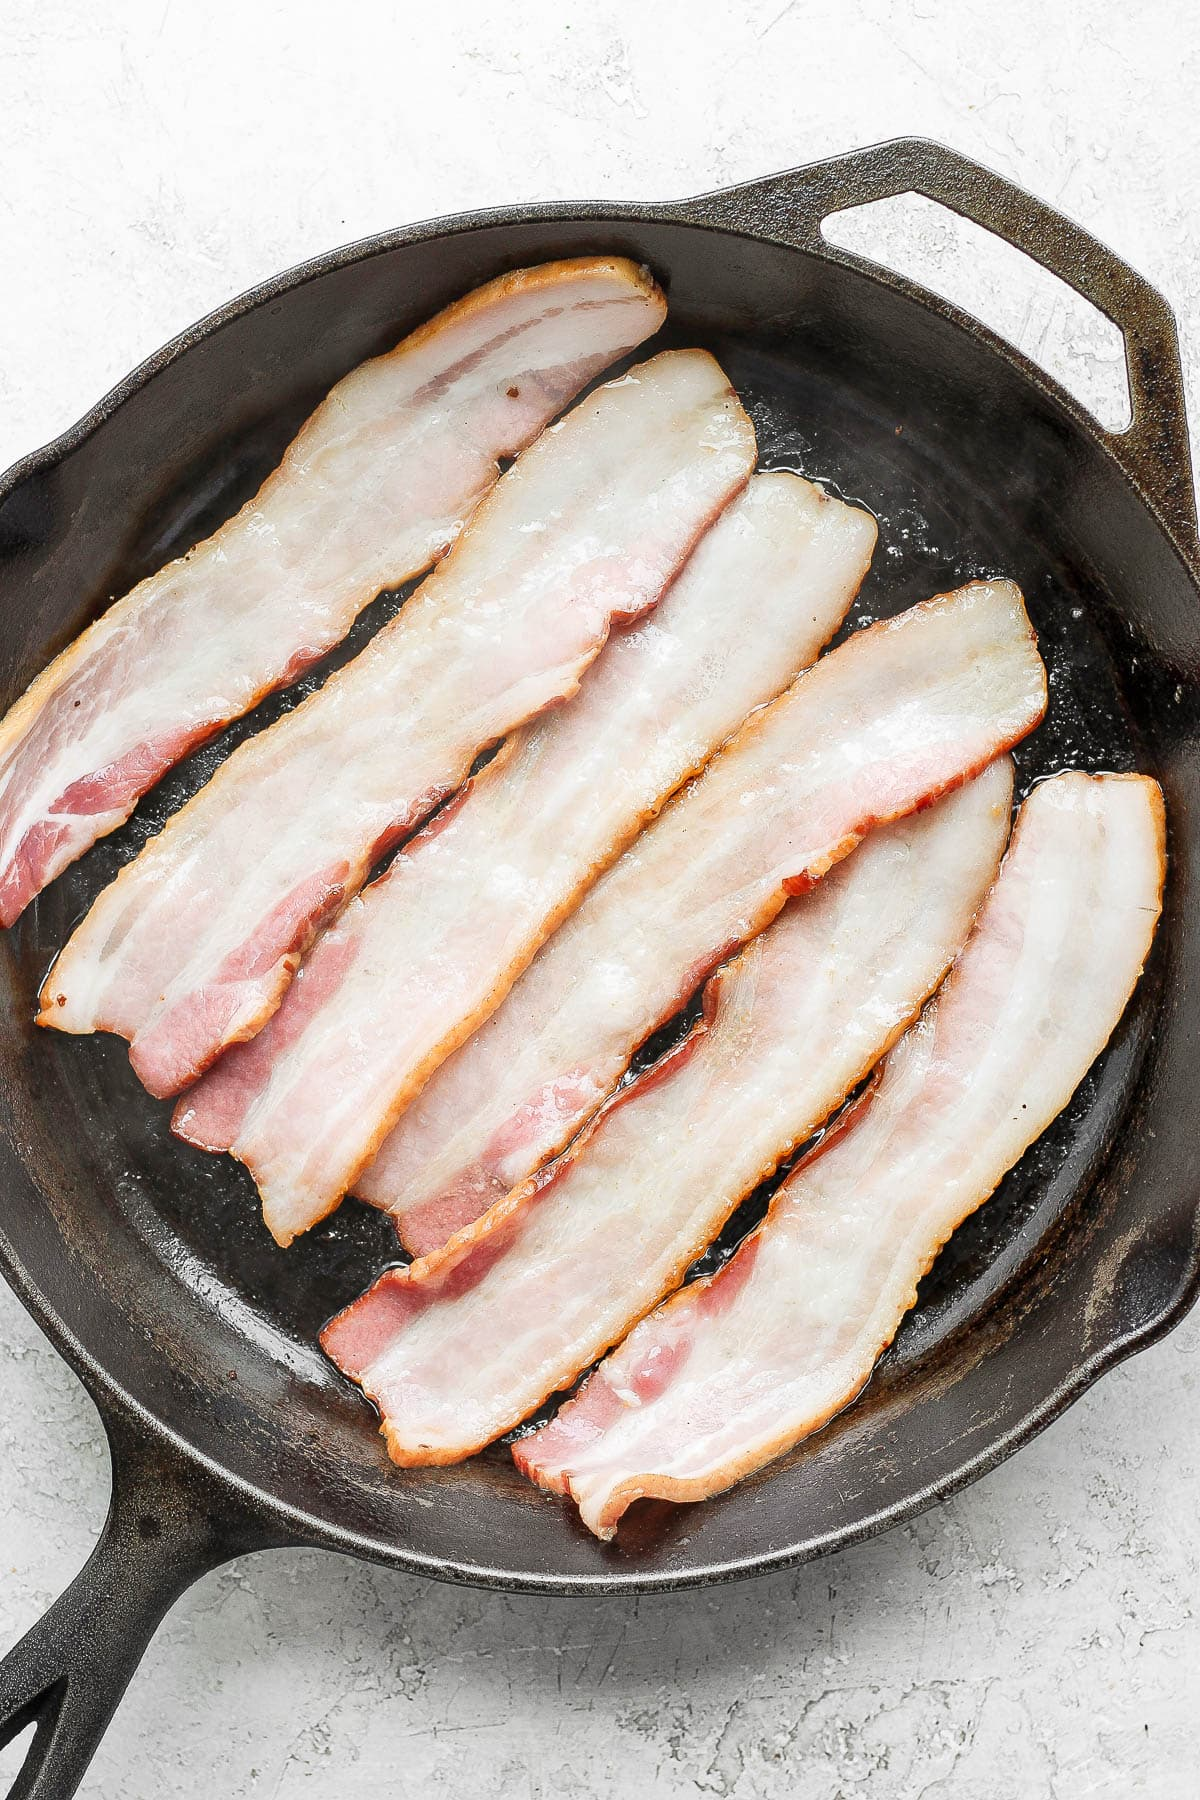 Six pieces of bacon cooking in a cast iron skillet.